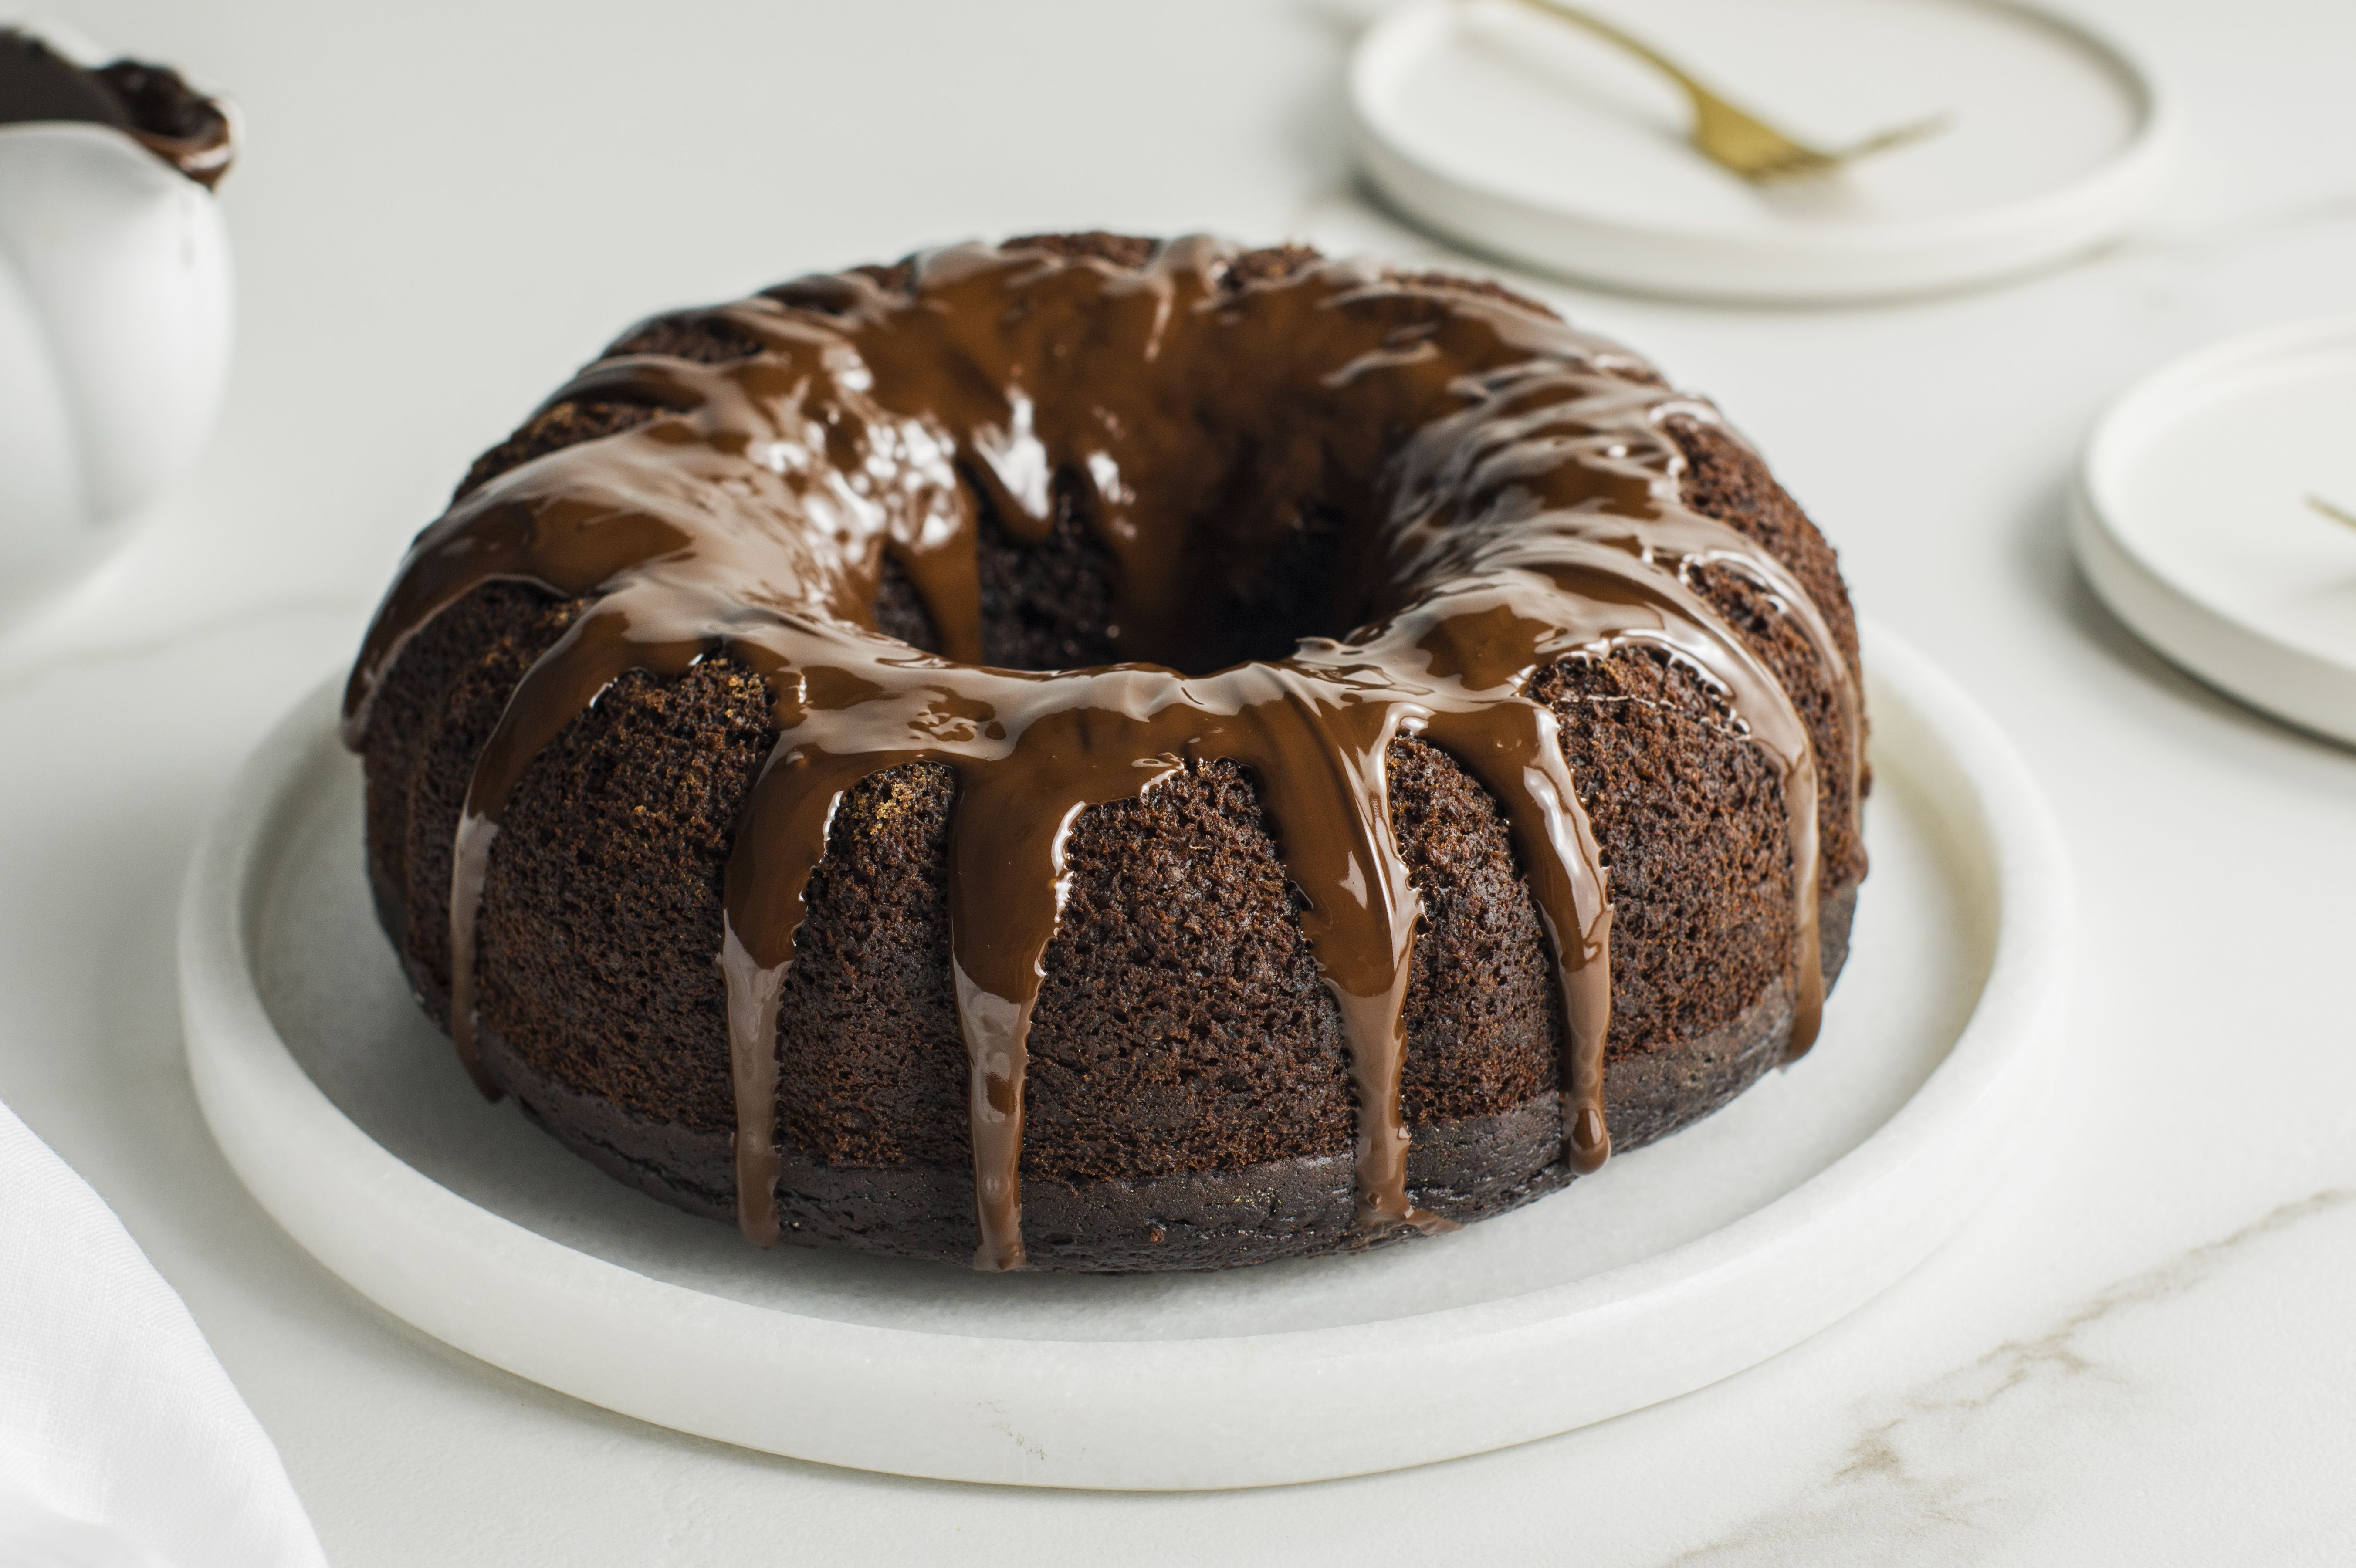 This decadent chocolate pumpkin bundt cake is completely